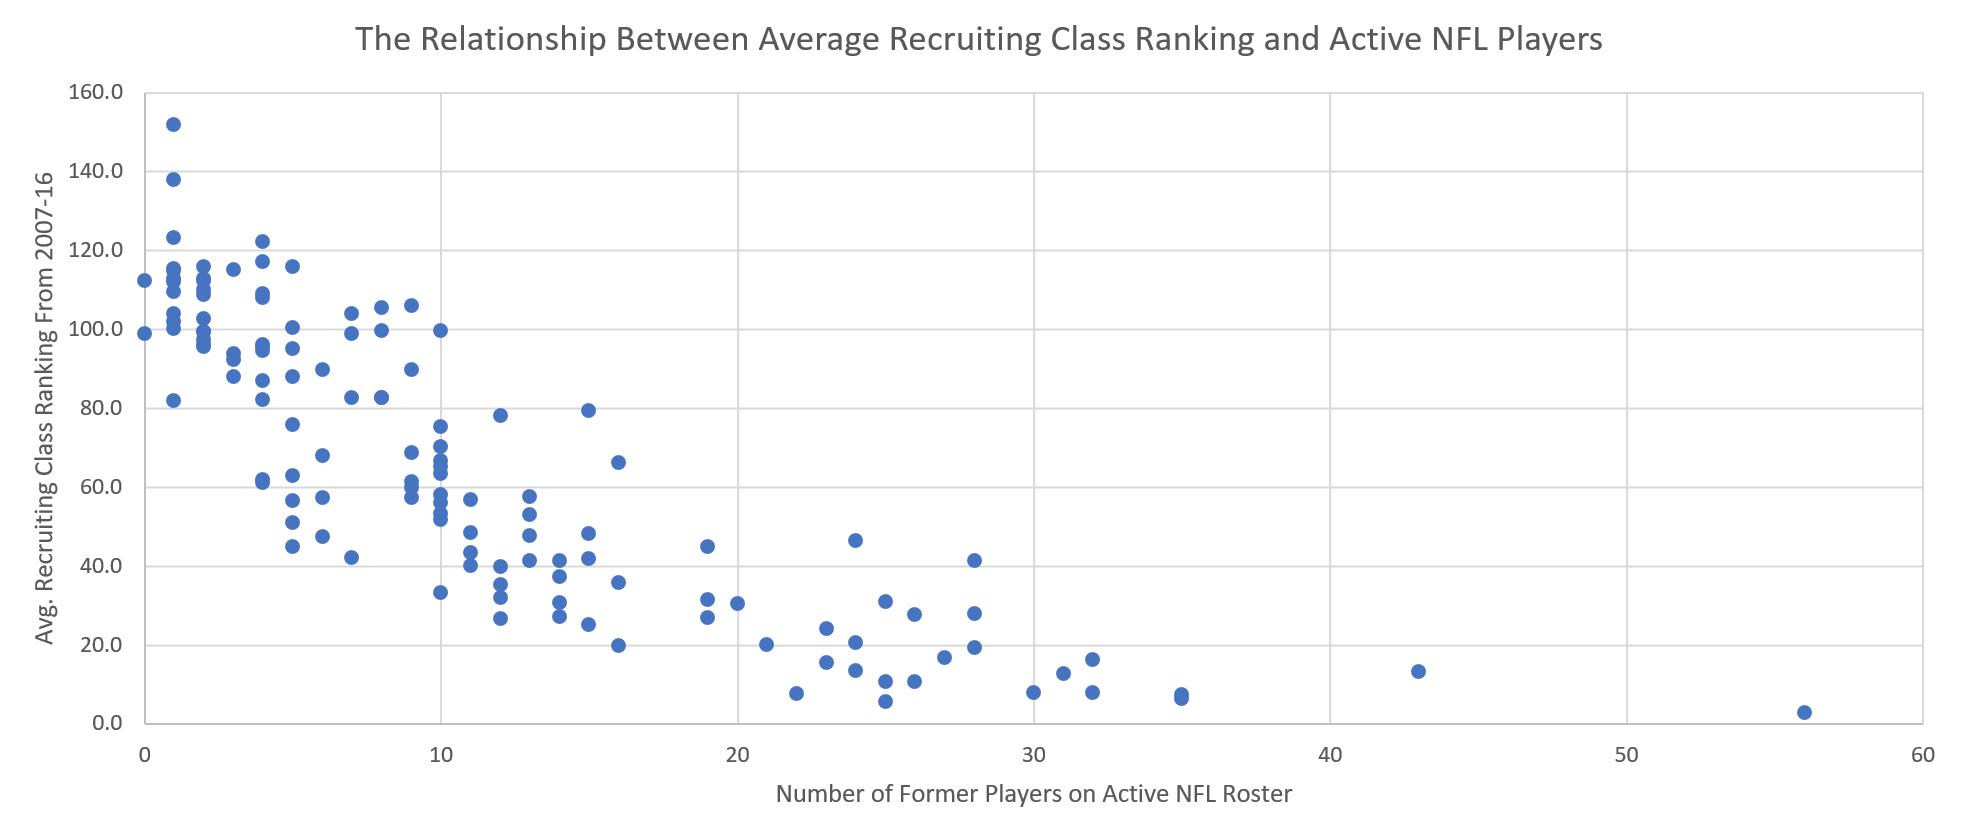 Comparing College Football Recruiting Rankings to Number of